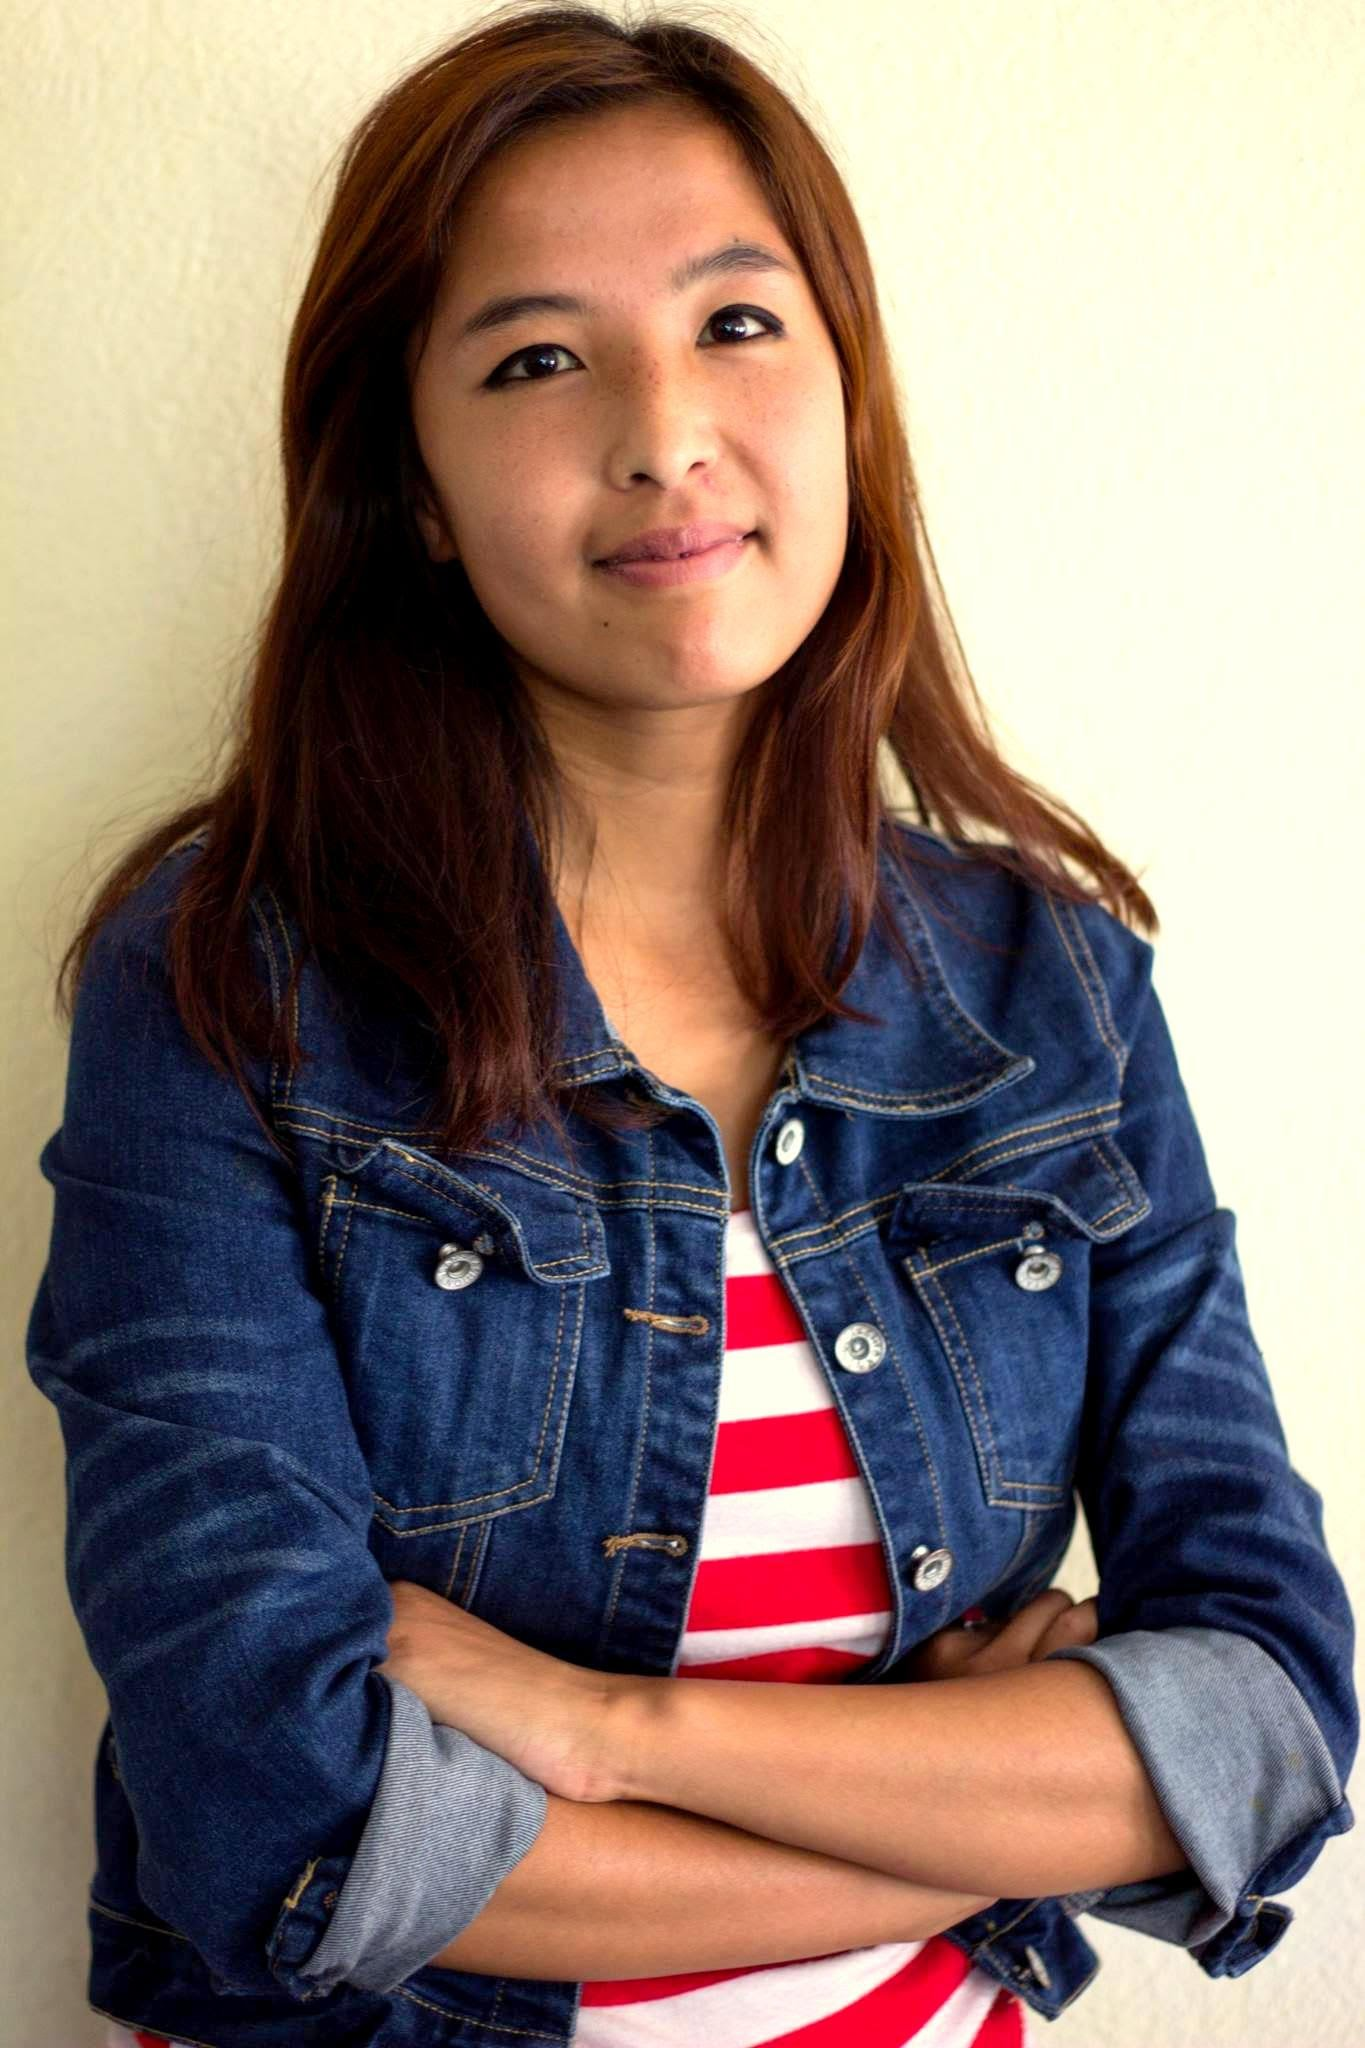 Interview rojina bajracharya girls in technology nepal the mary sue earlier this month i got the chance to talk to girls in technology co founder rojina bajracharya who was visiting new york as the winner of toptals ccuart Gallery